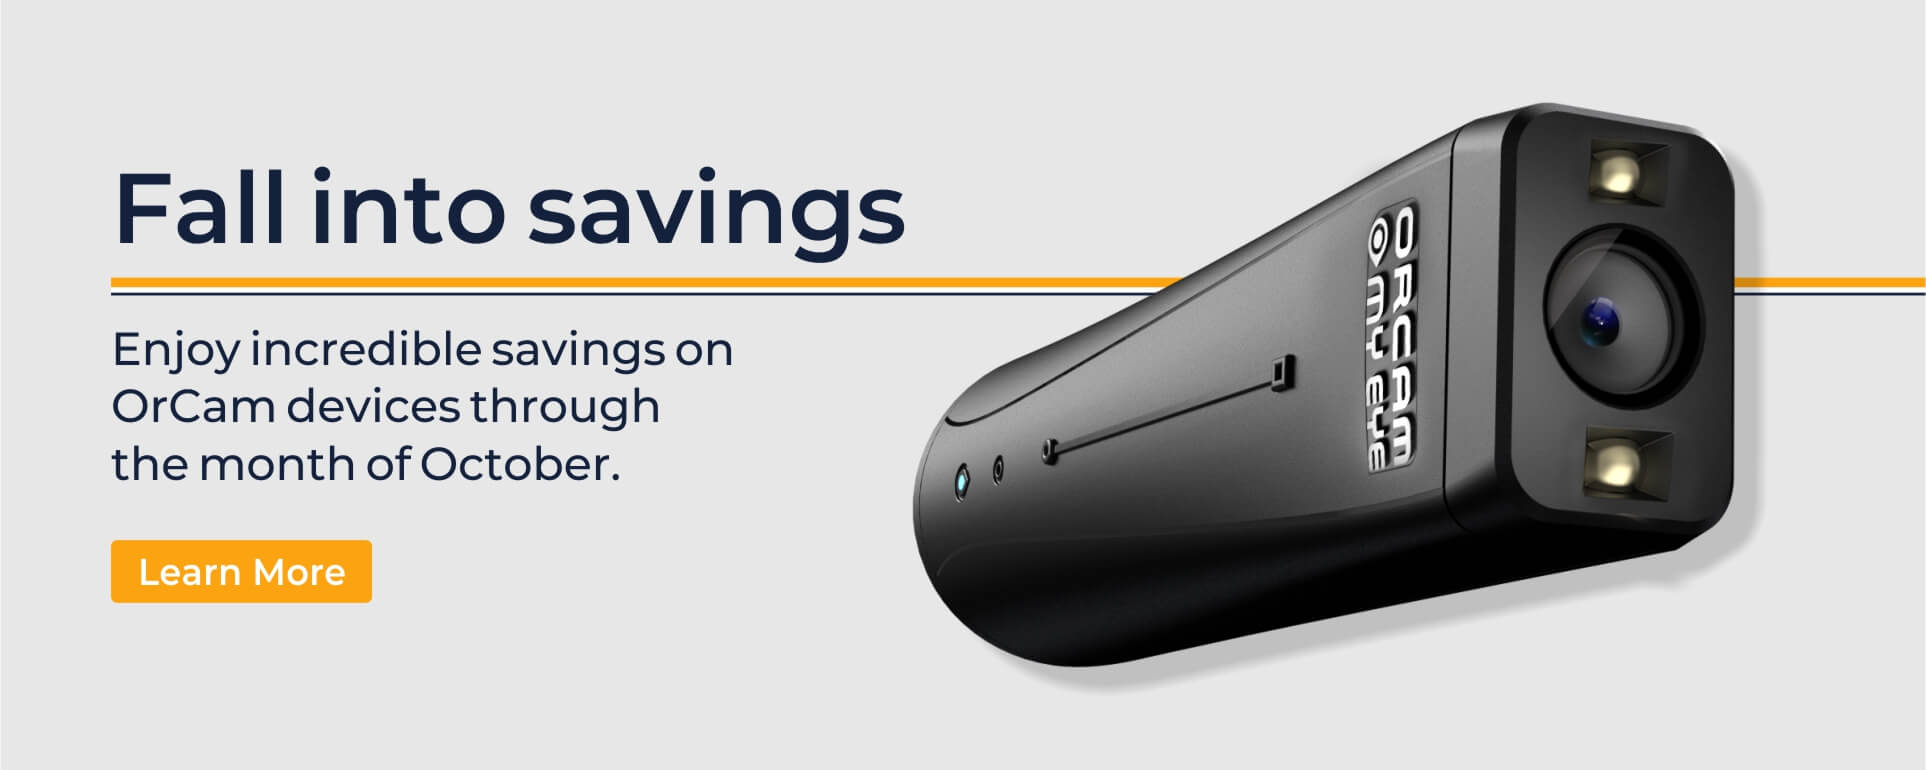 Fall into savings. Enjoy incredible savings on OrCam devices through the month of October. Learn more.